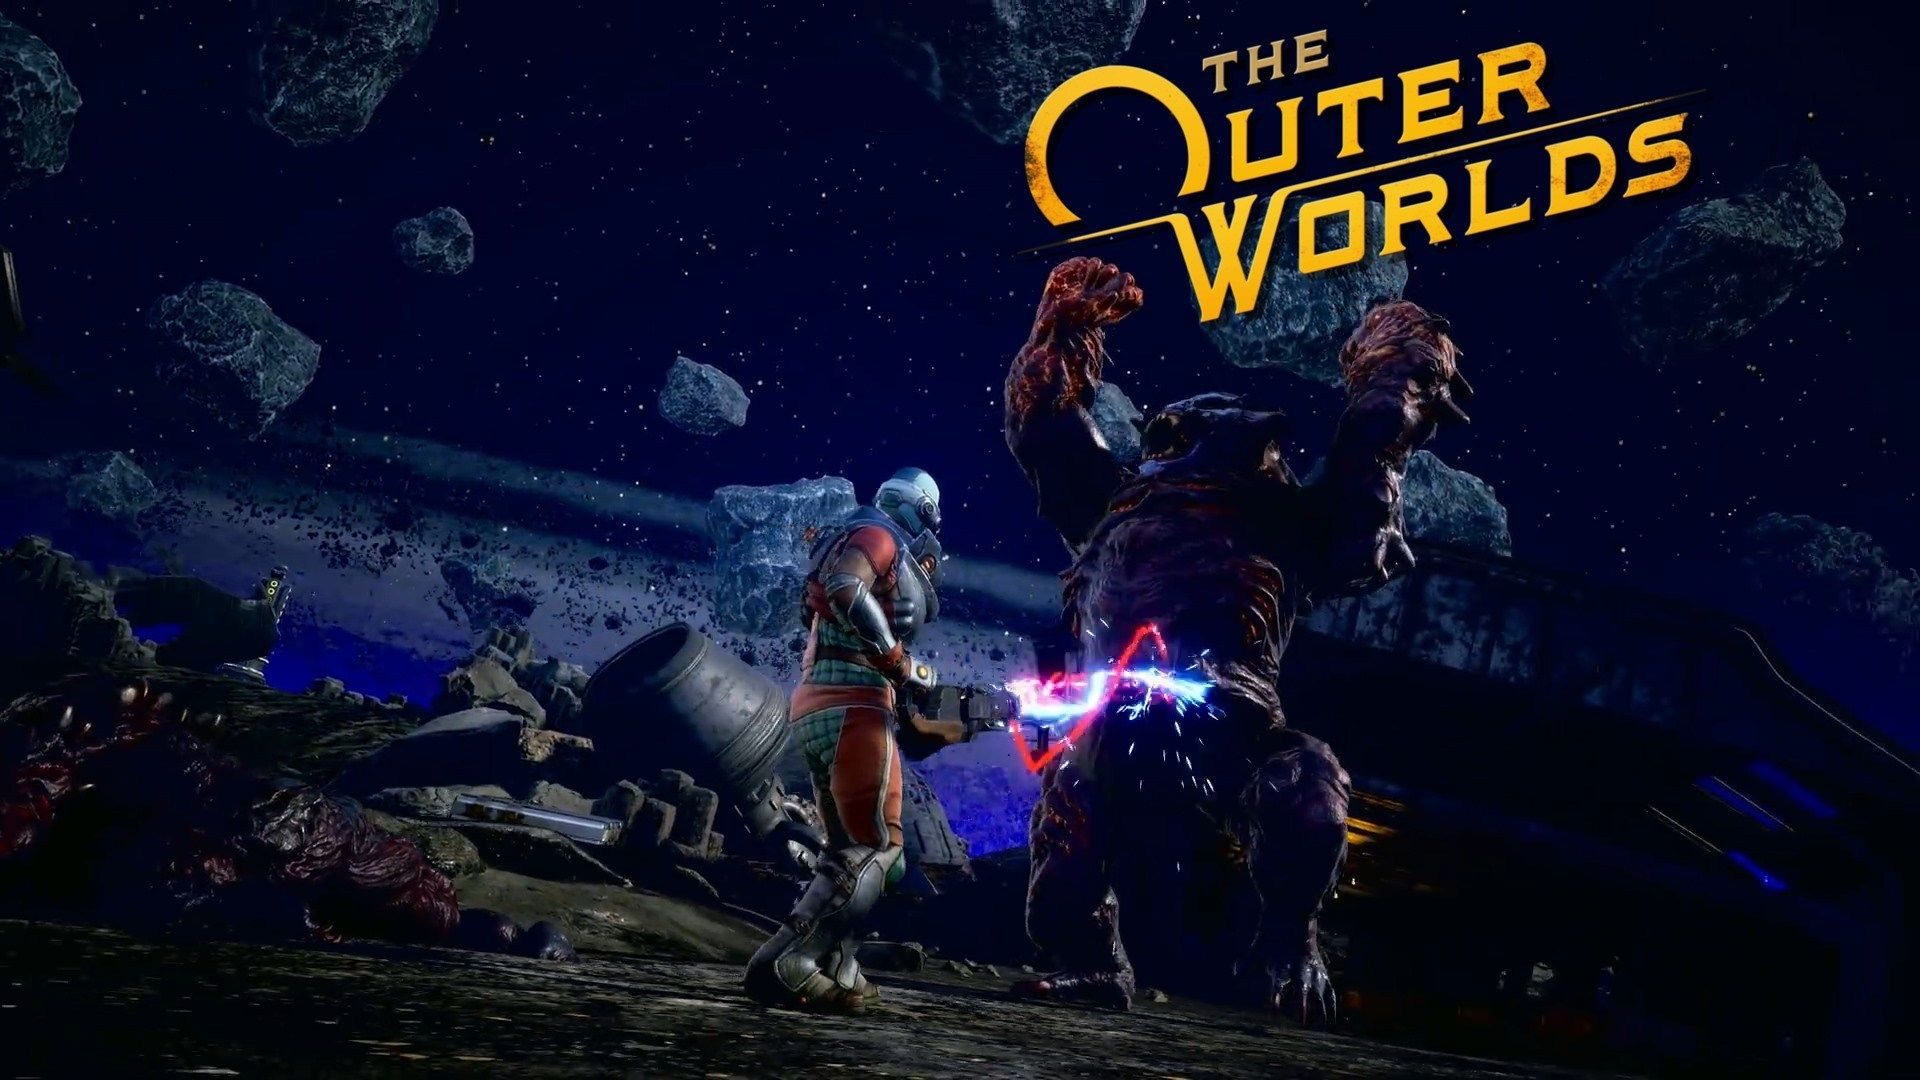 The Outer Worlds HD Wallpapers - Wallpaper Cave